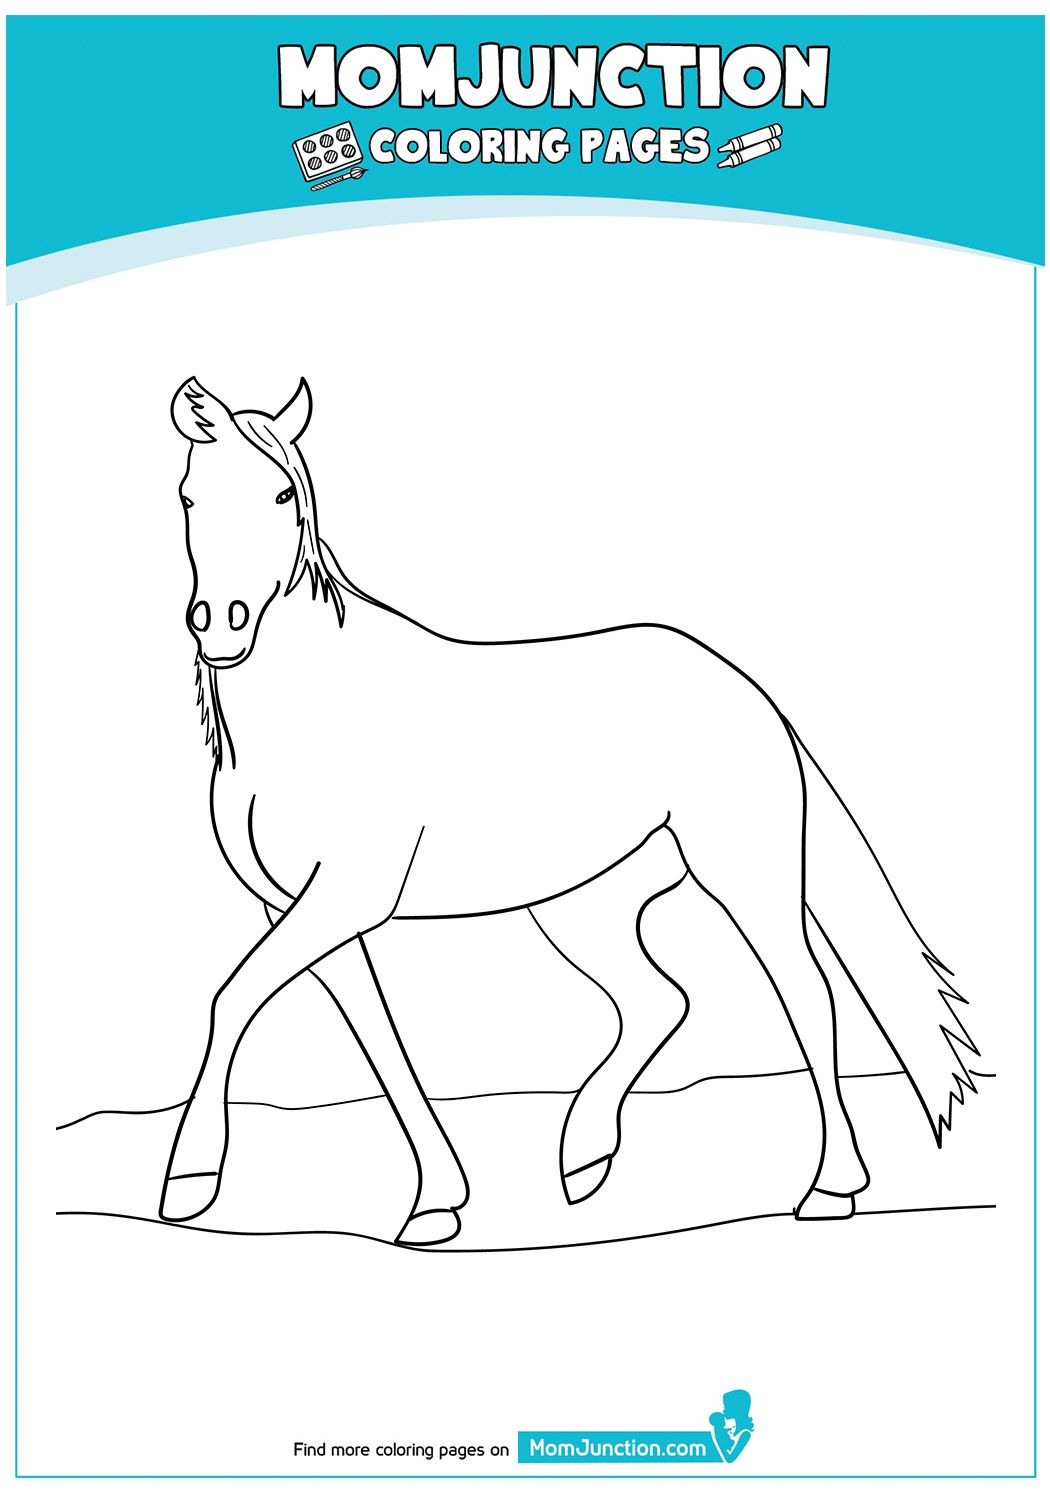 Blue Roan Arabian Horse 17 Horse Coloring Pages Horse Coloring Coloring Pages [ 1500 x 1050 Pixel ]